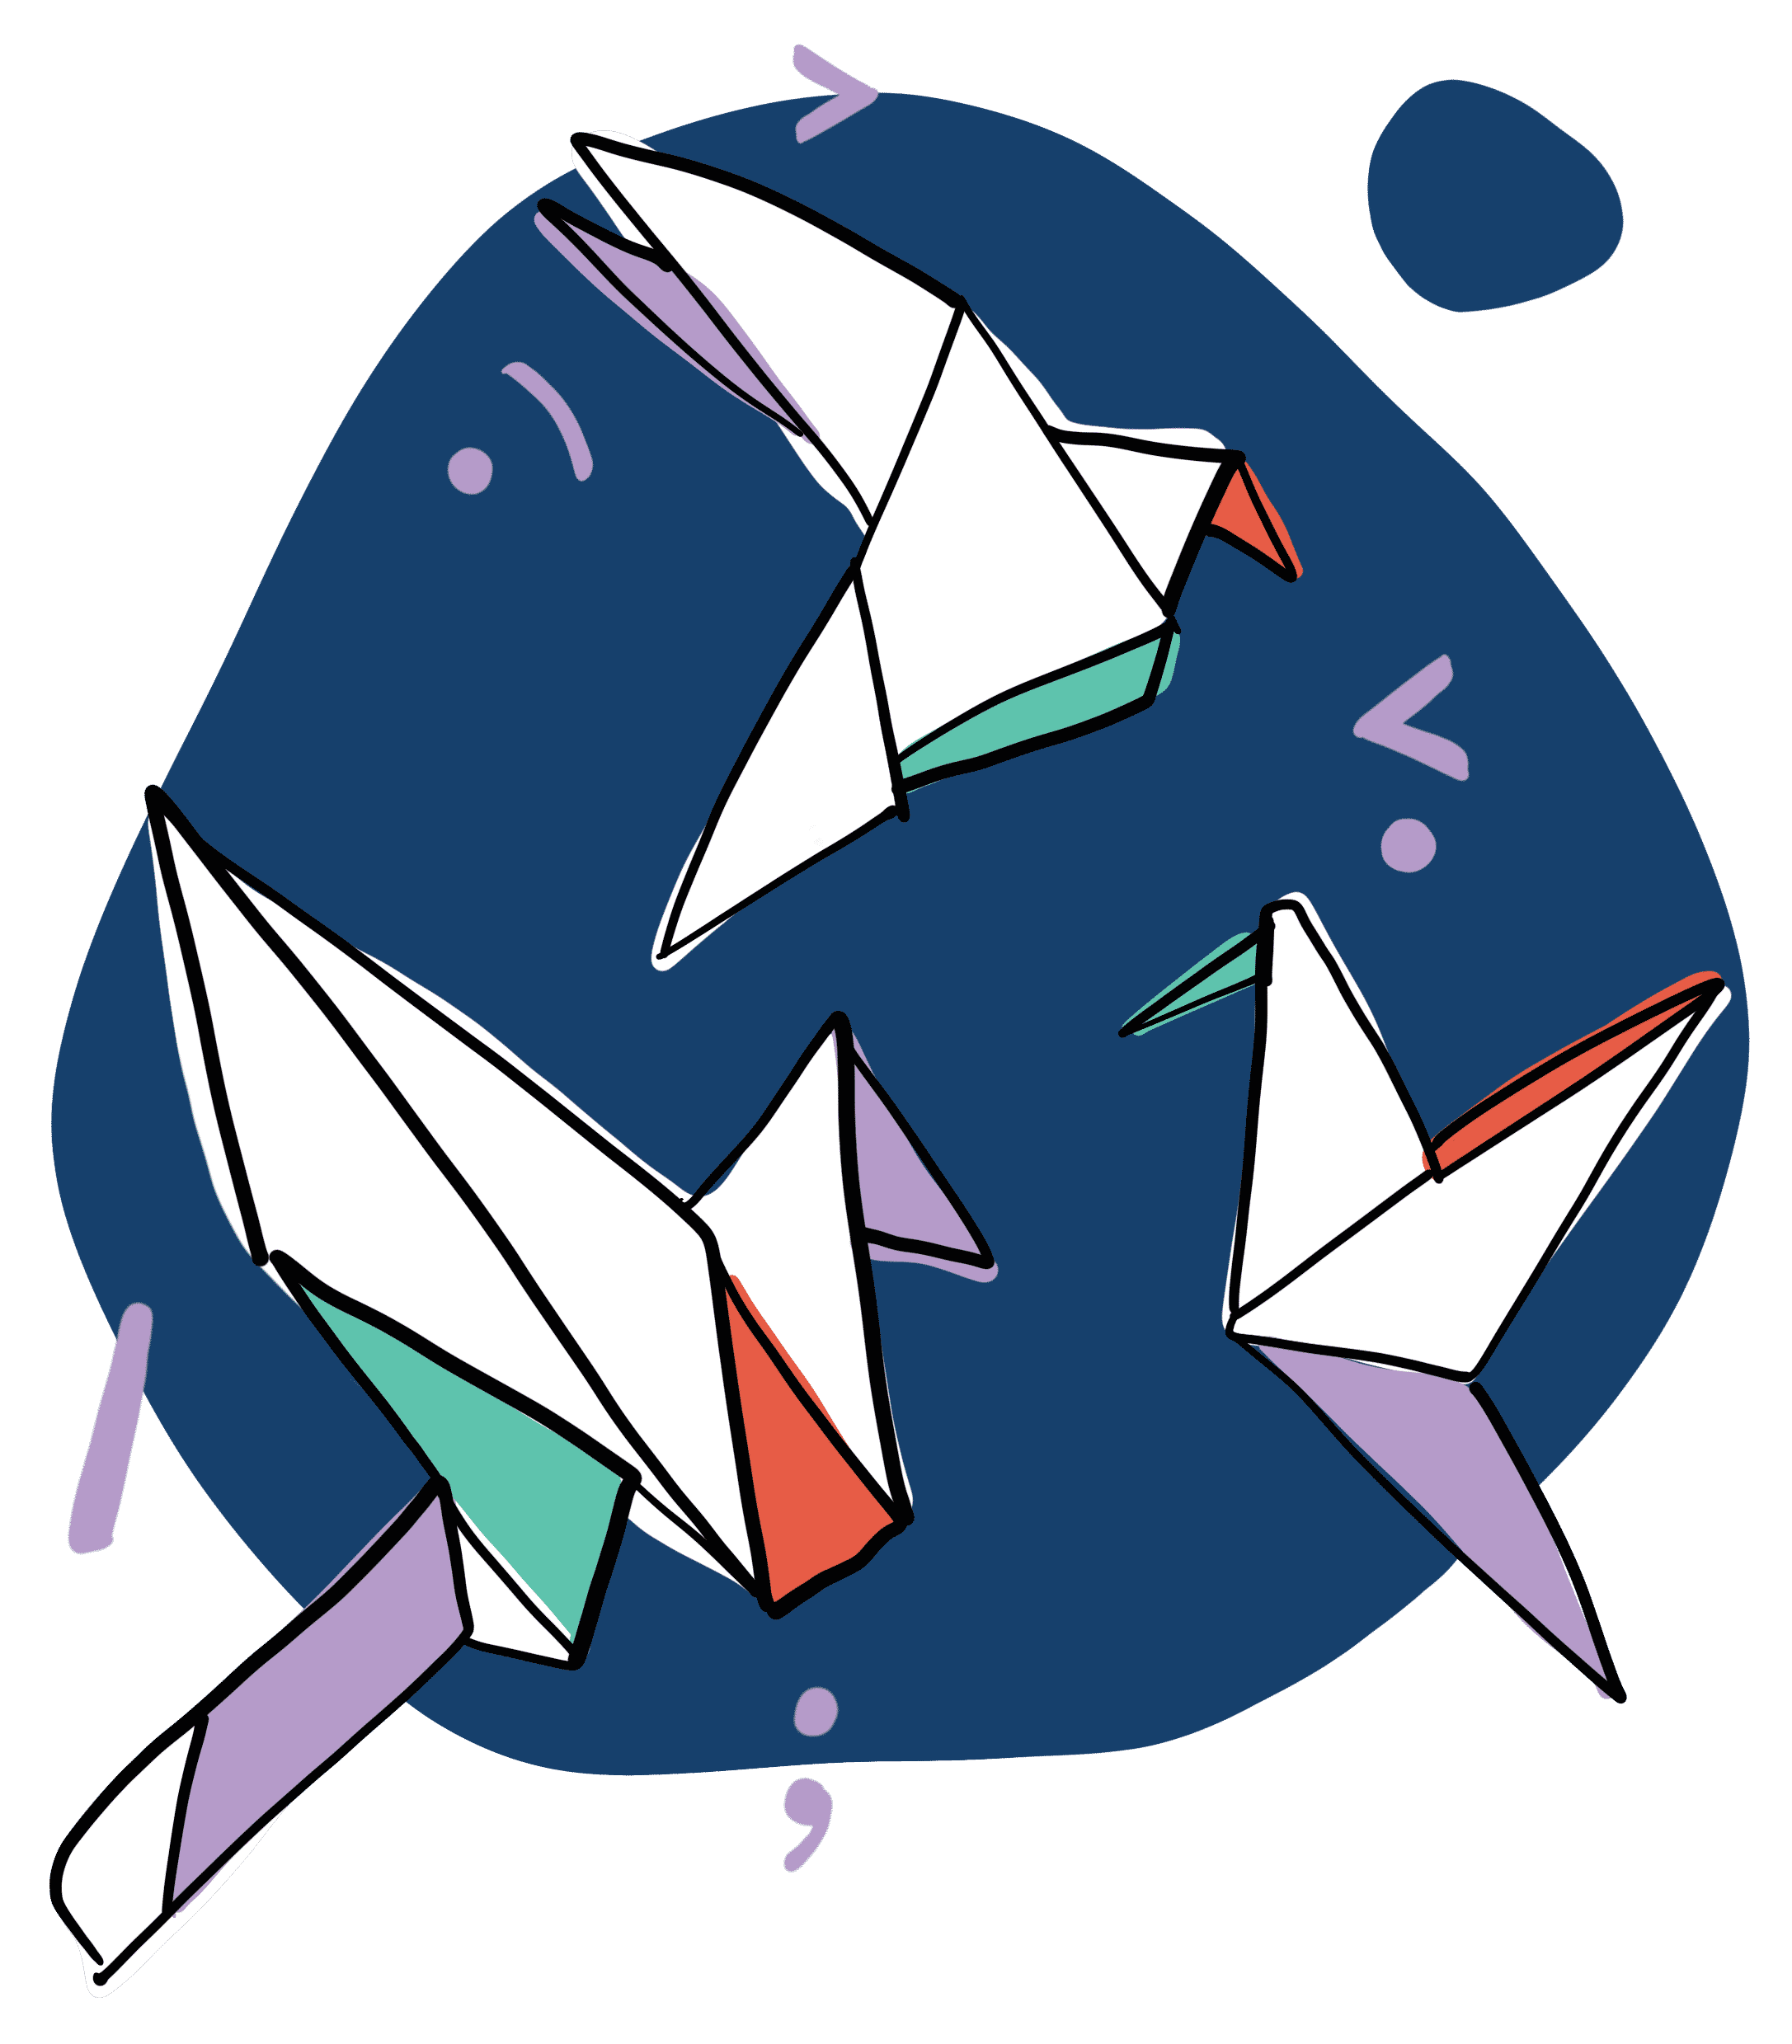 Formation origami